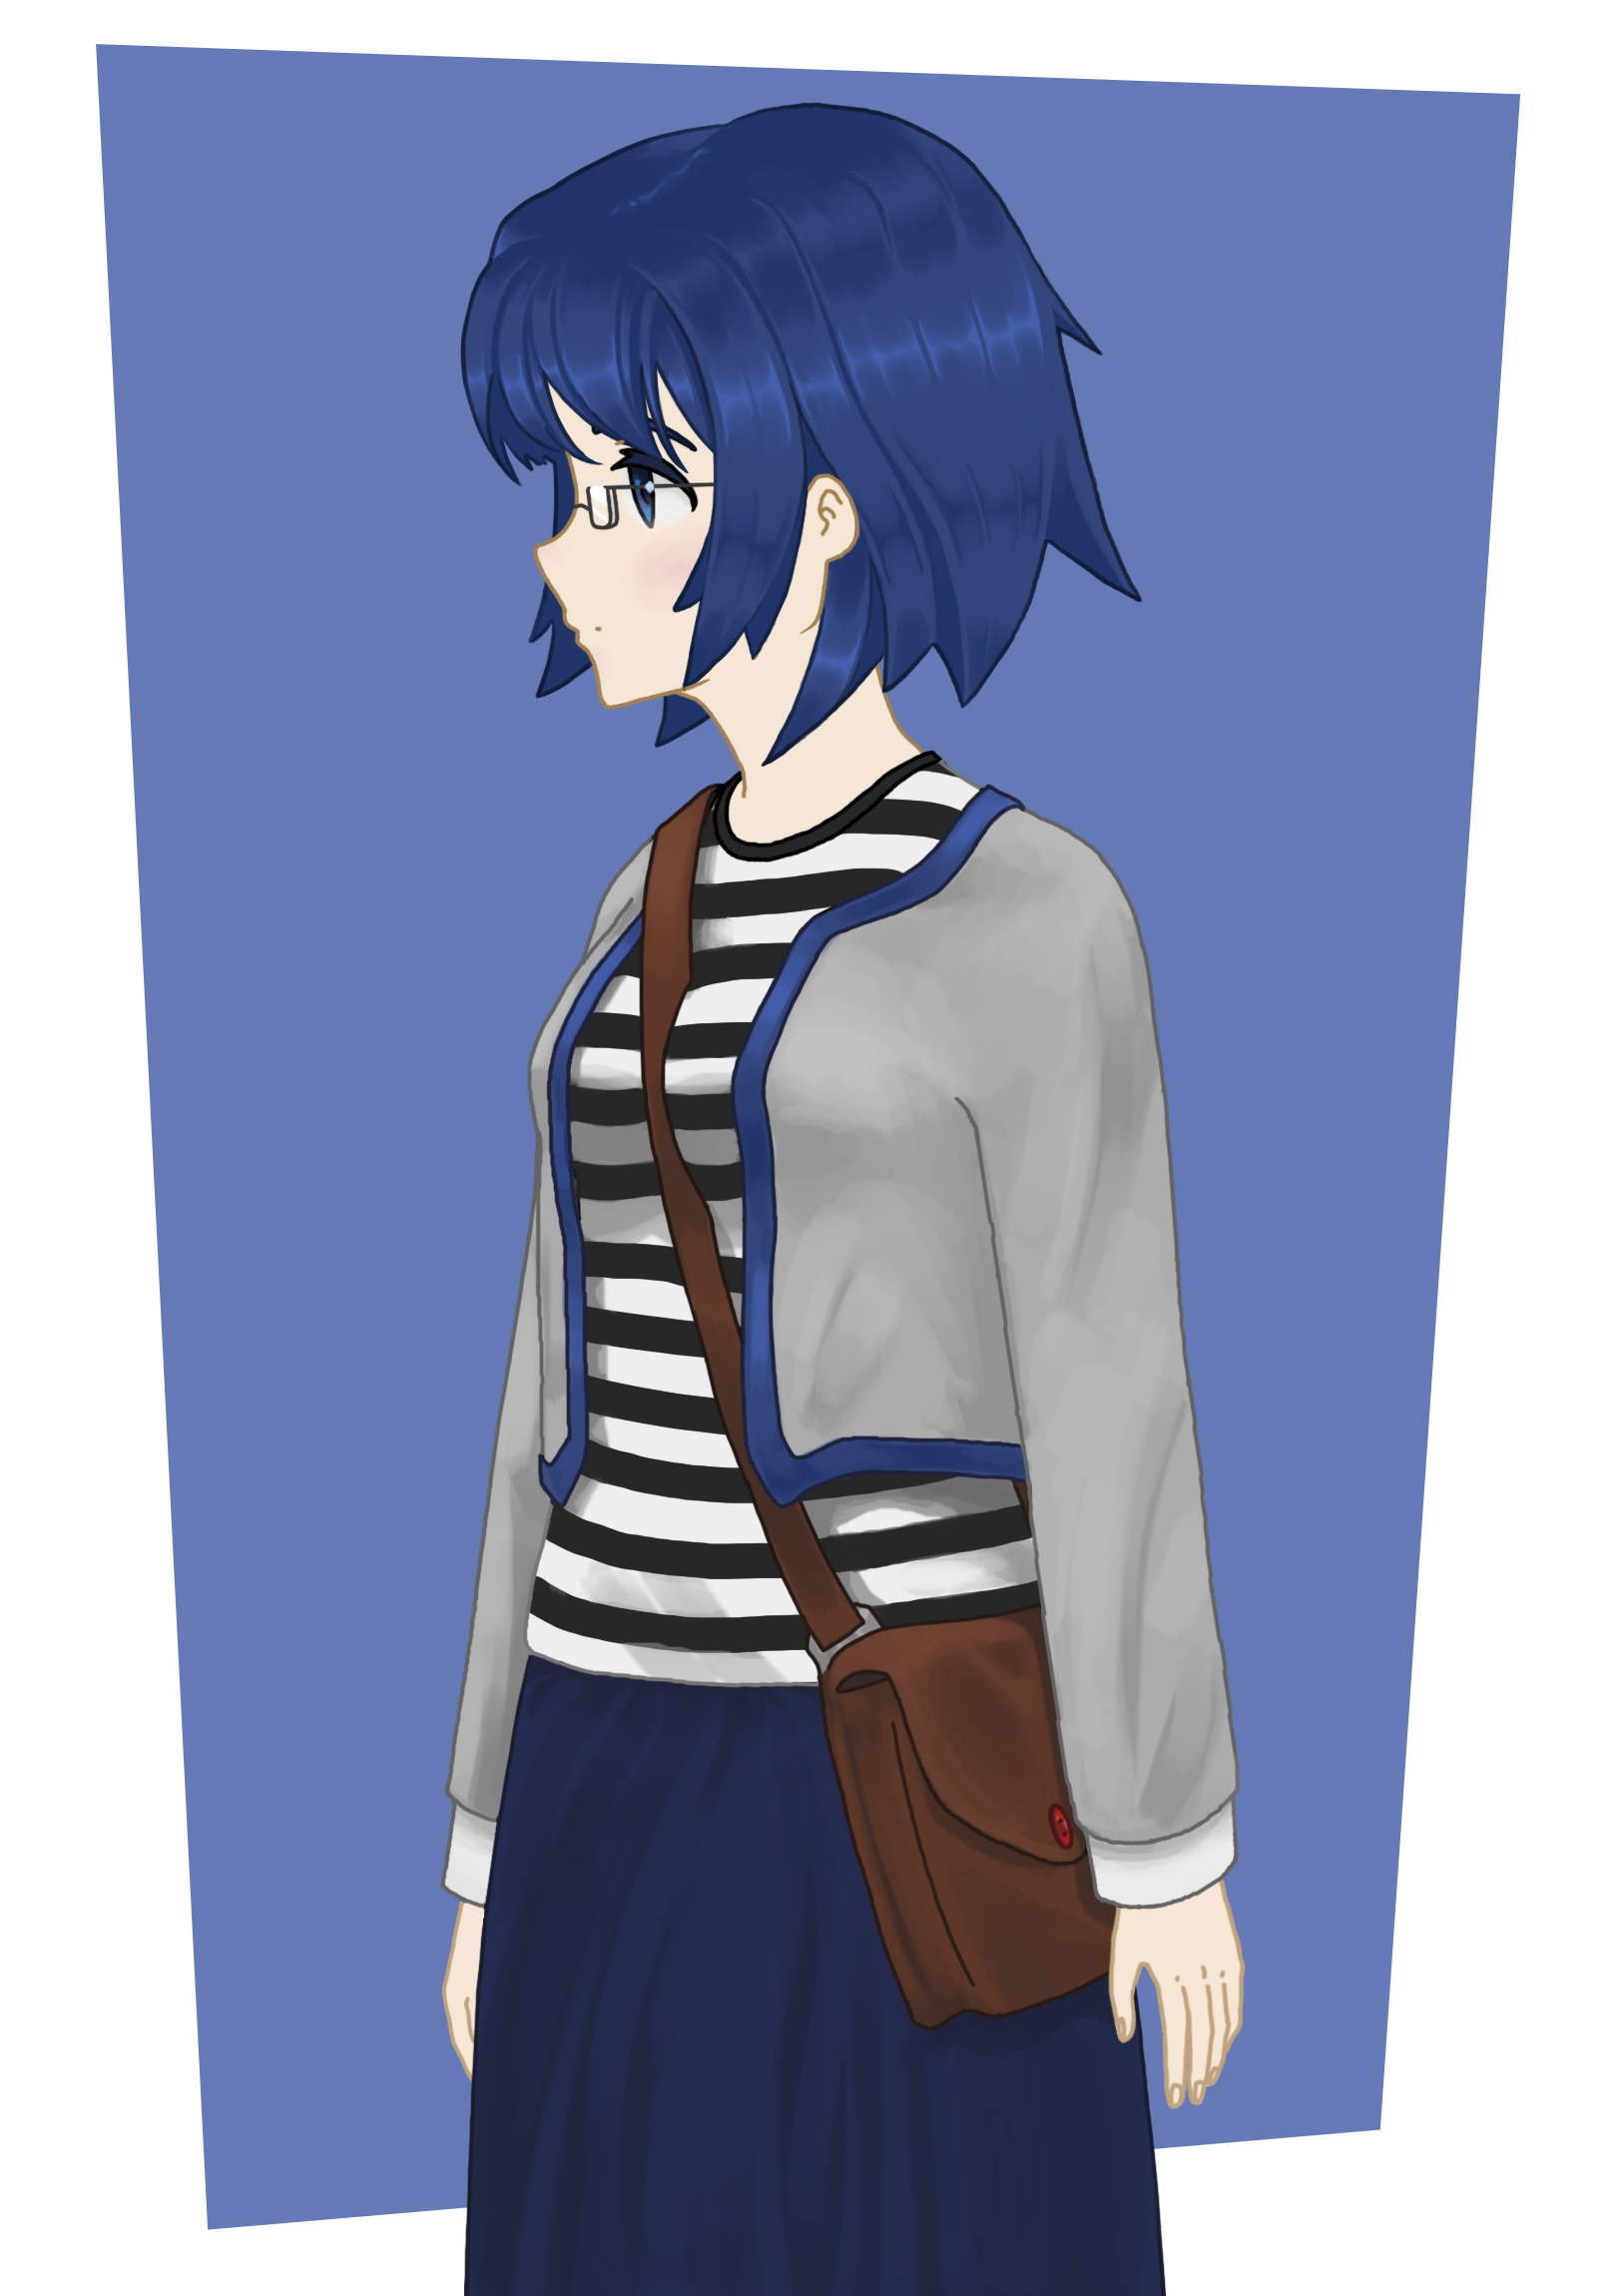 Shizune striped.jpg